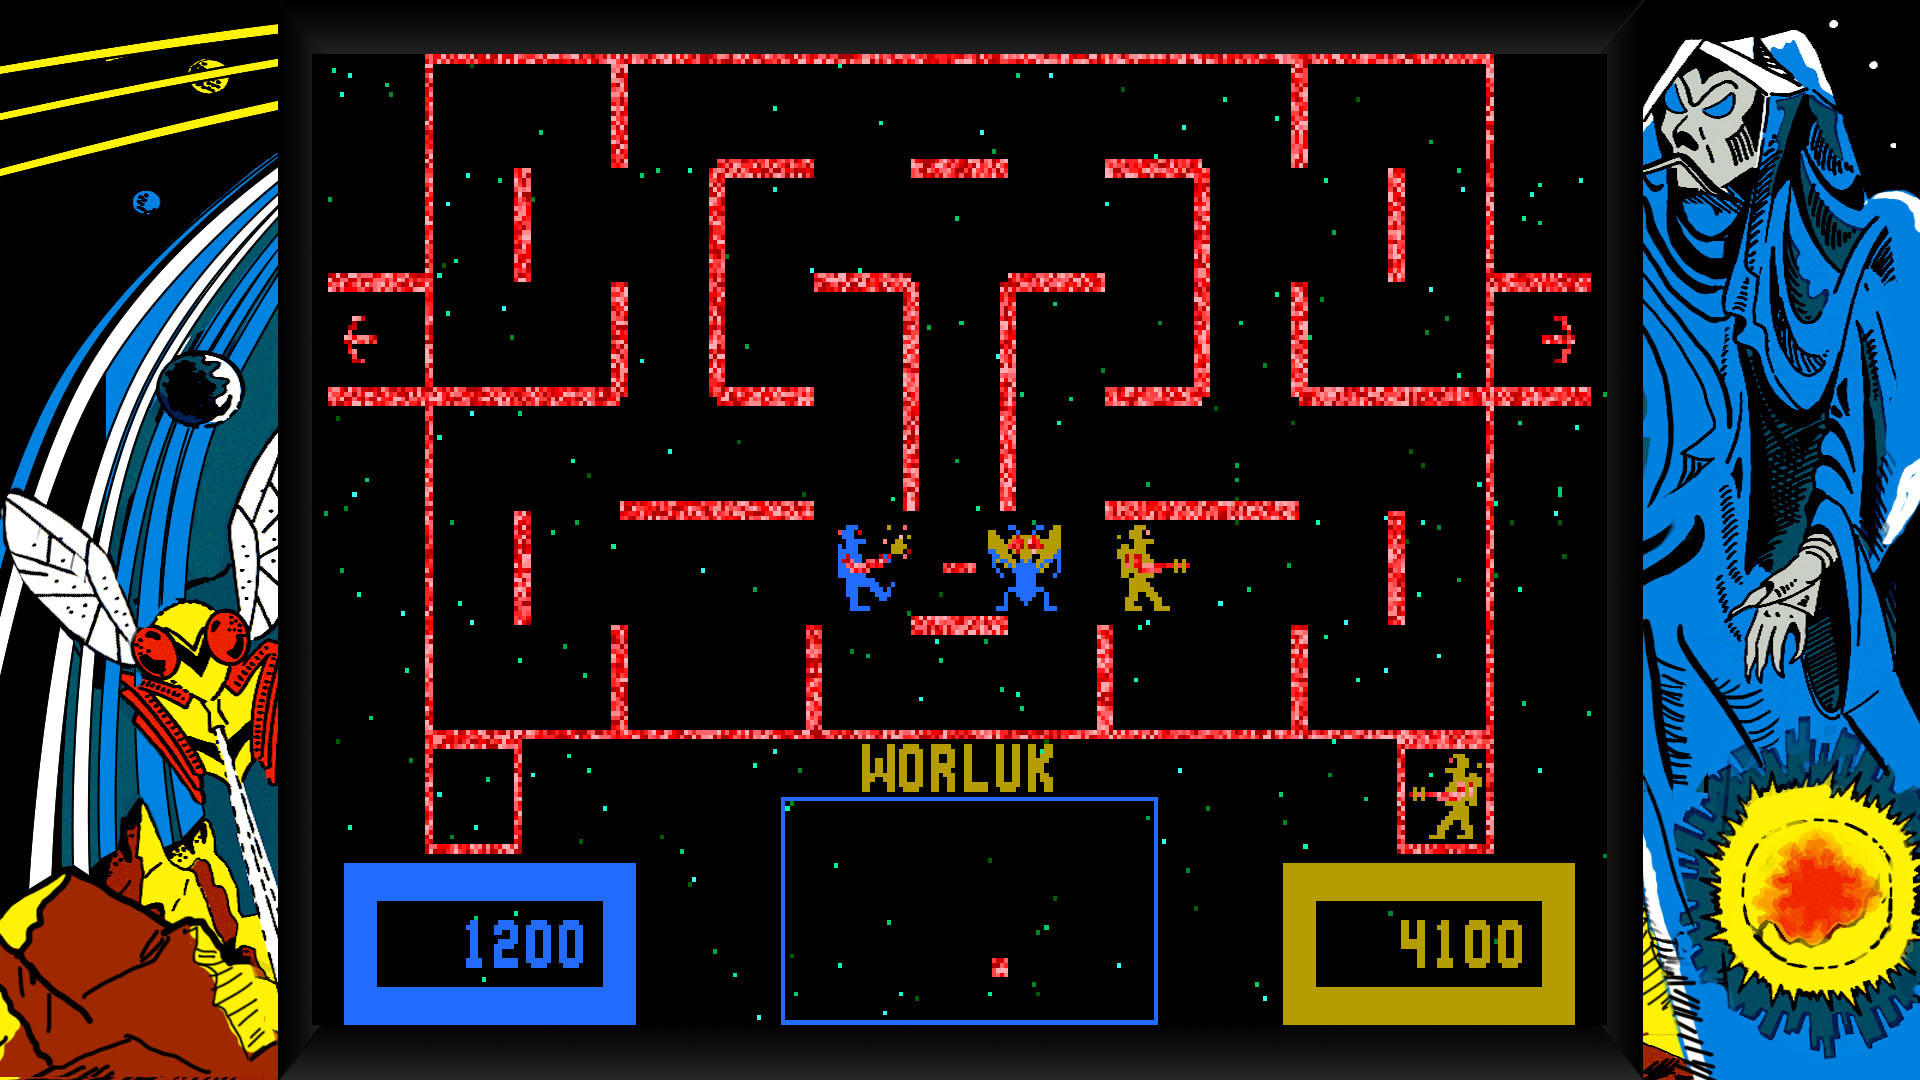 Retro Arcade Wallpaper Retro fans will likely have